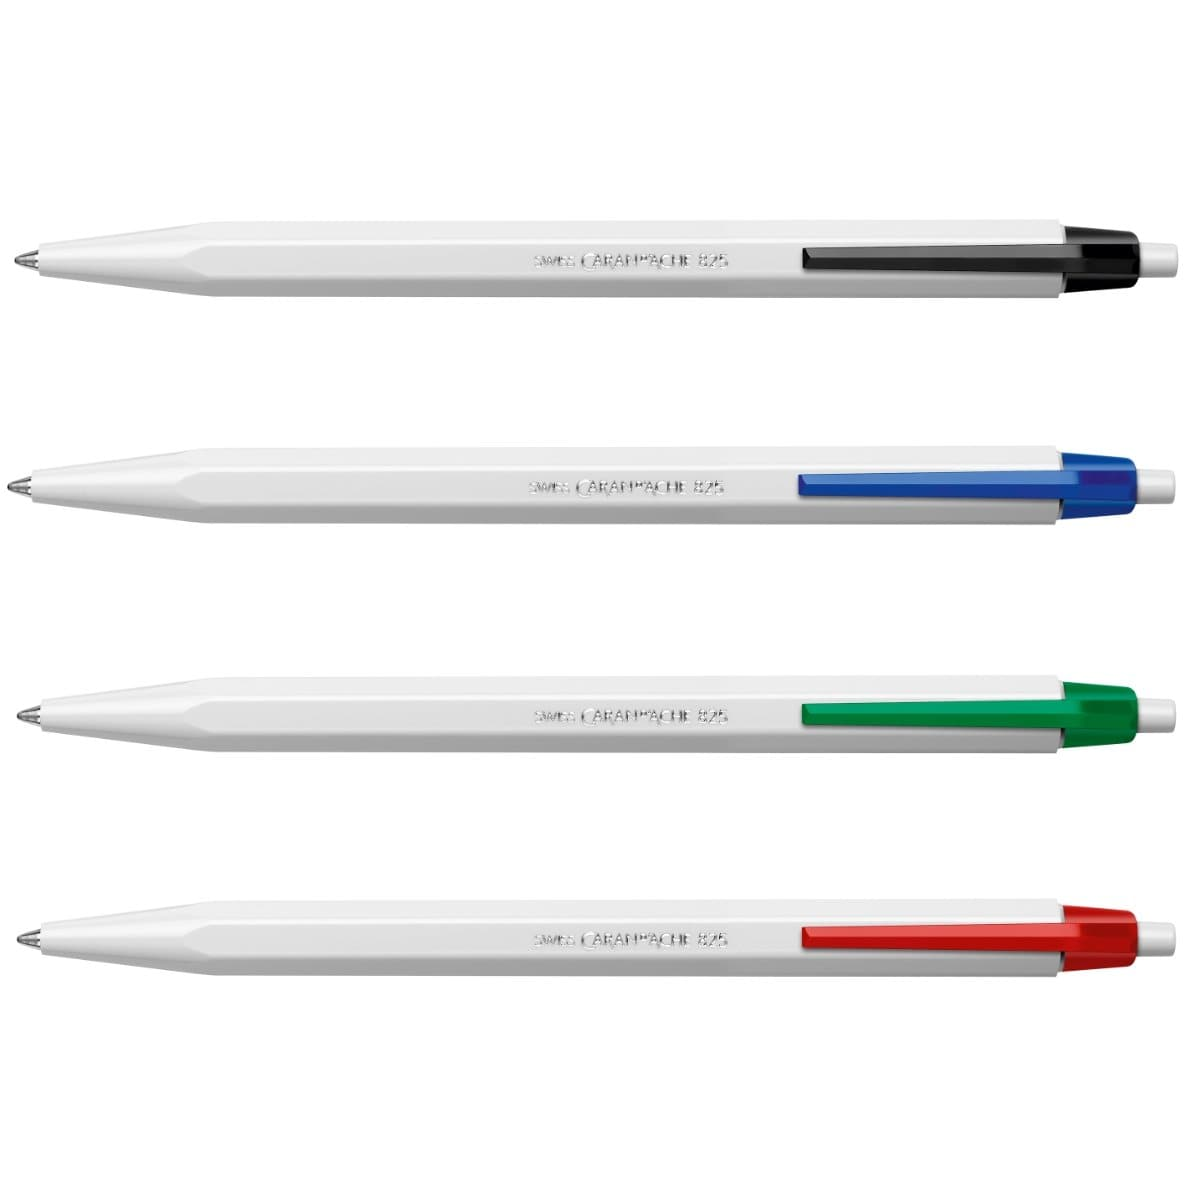 CARAN d'ACHE 825 Ballpoint Pen with Push-Button, 0.7mm, per piece